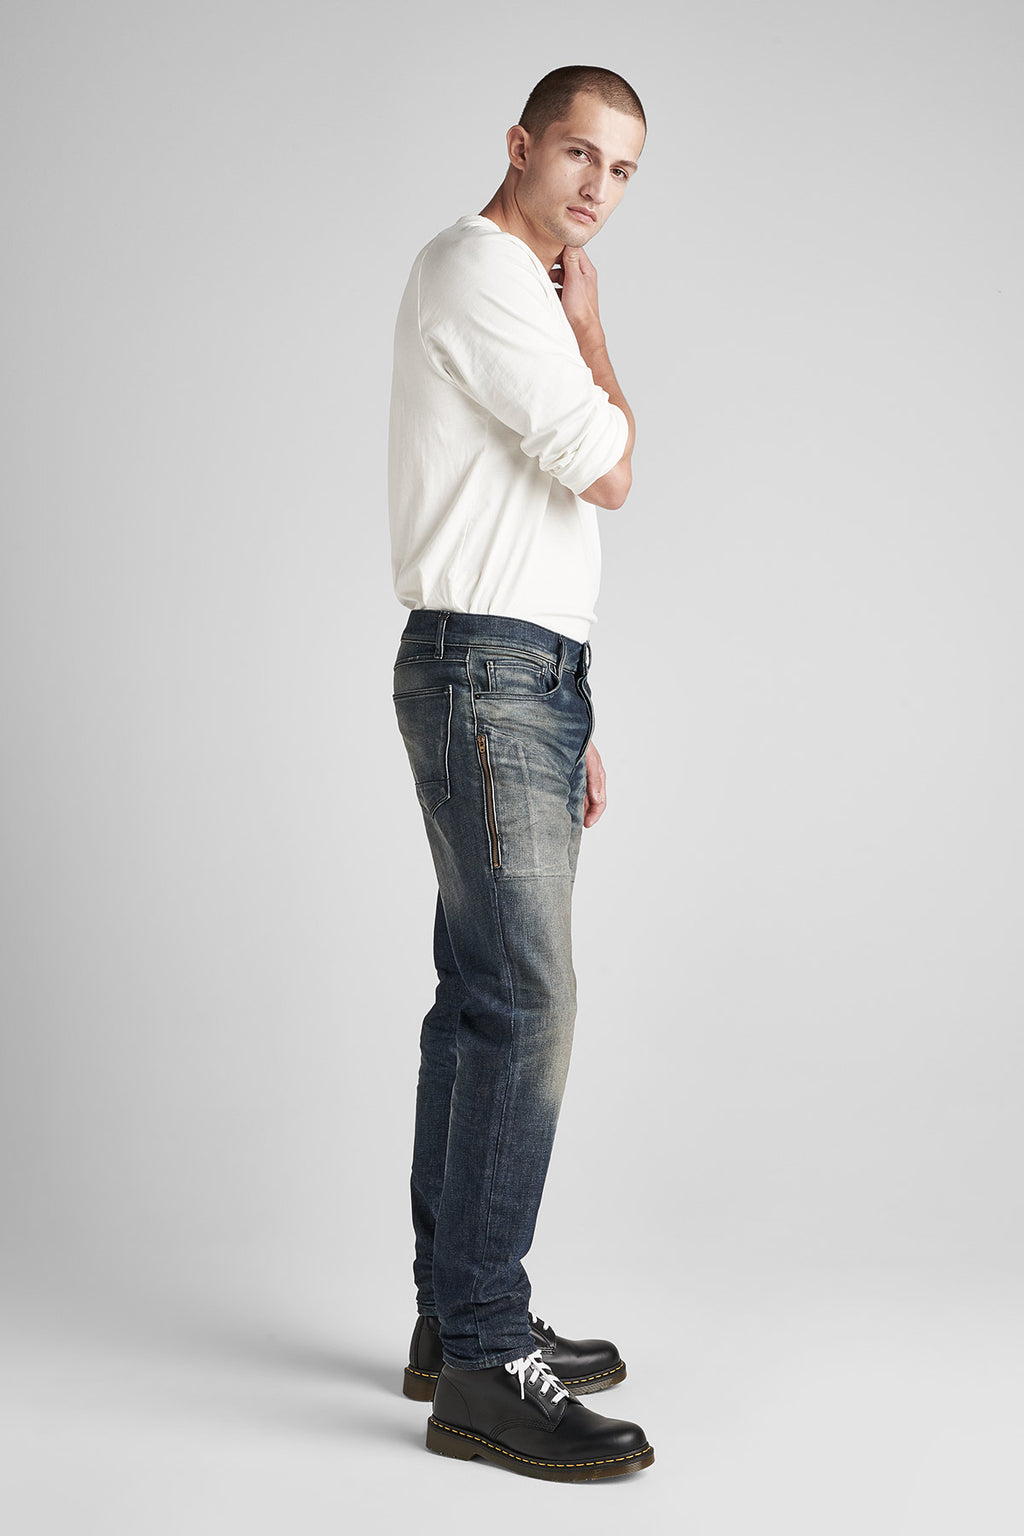 SARTOR RELAXED SKINNY JEAN WITH EXPOSED ZIPPERS - MILLIGAN - Image 2